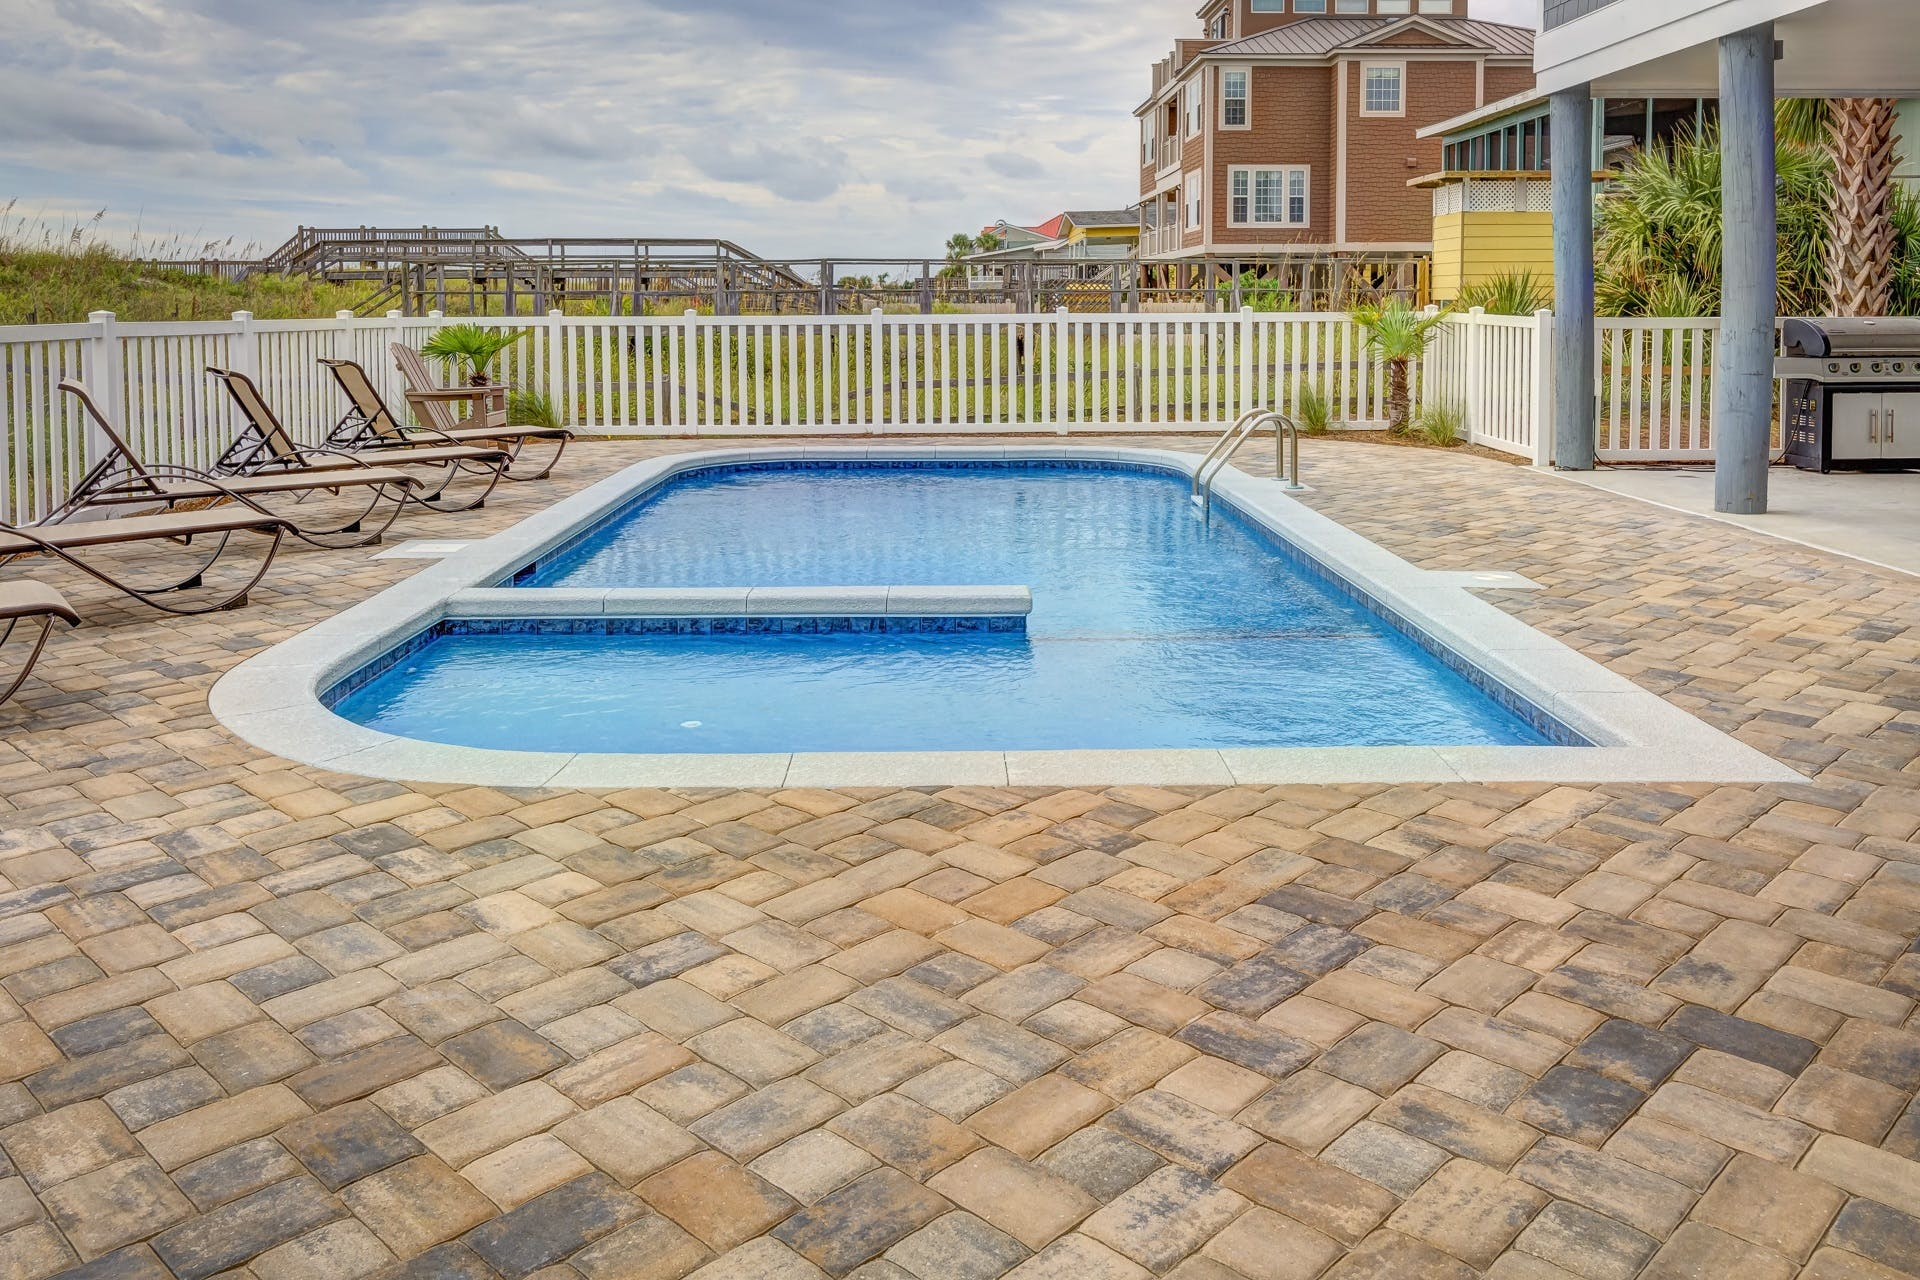 Photography of Pool Near Fence